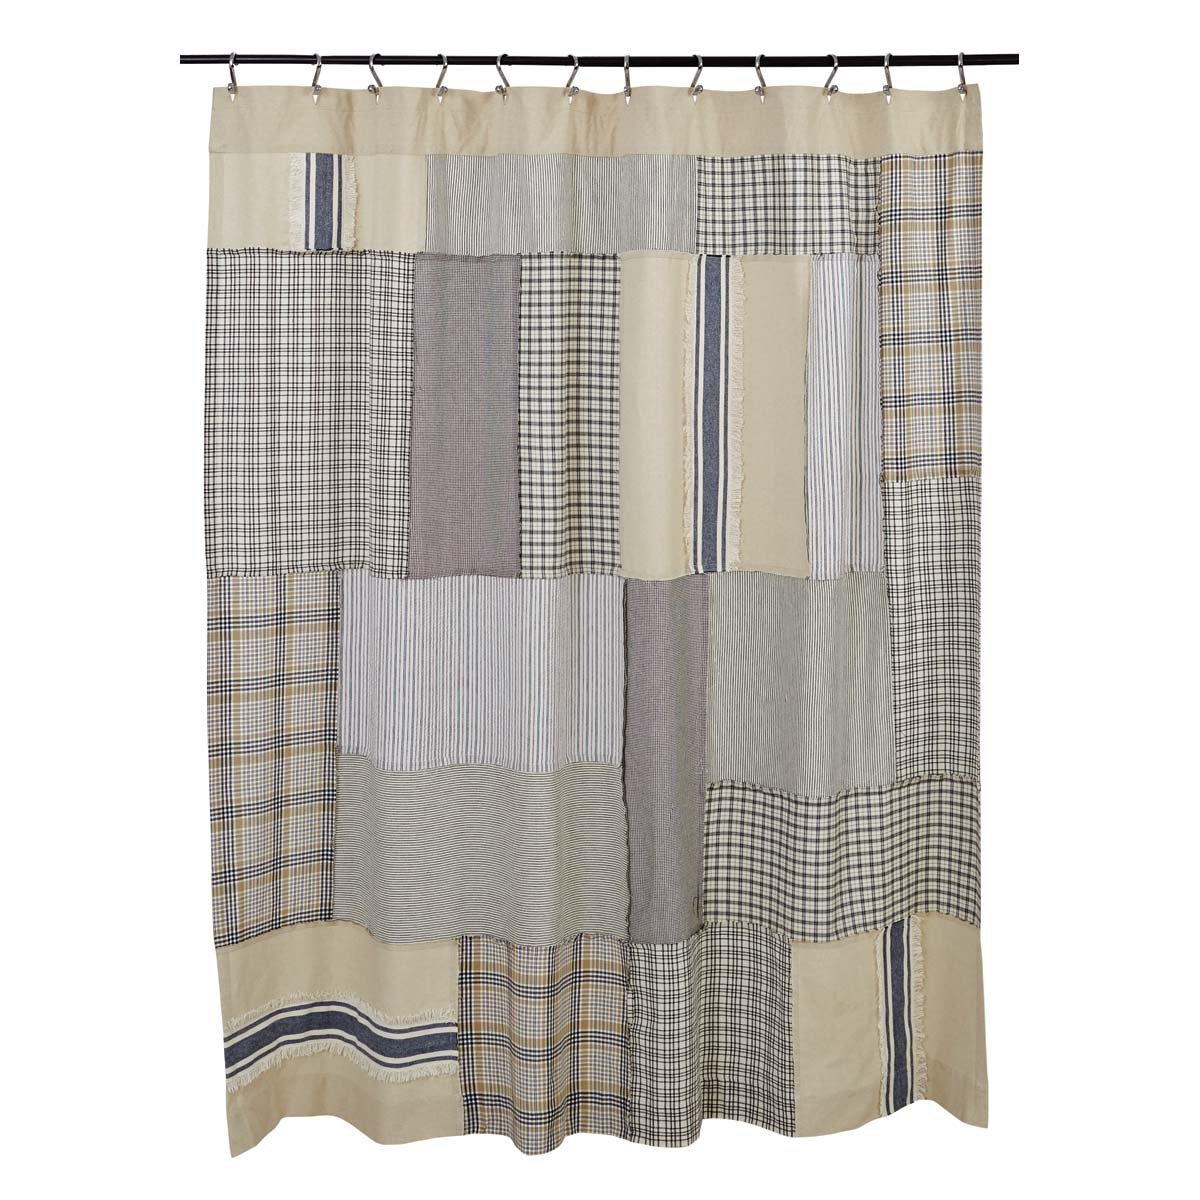 Piper Classics Mill Creek Patch Shower Curtain, 72 x 72, Farmhouse Style